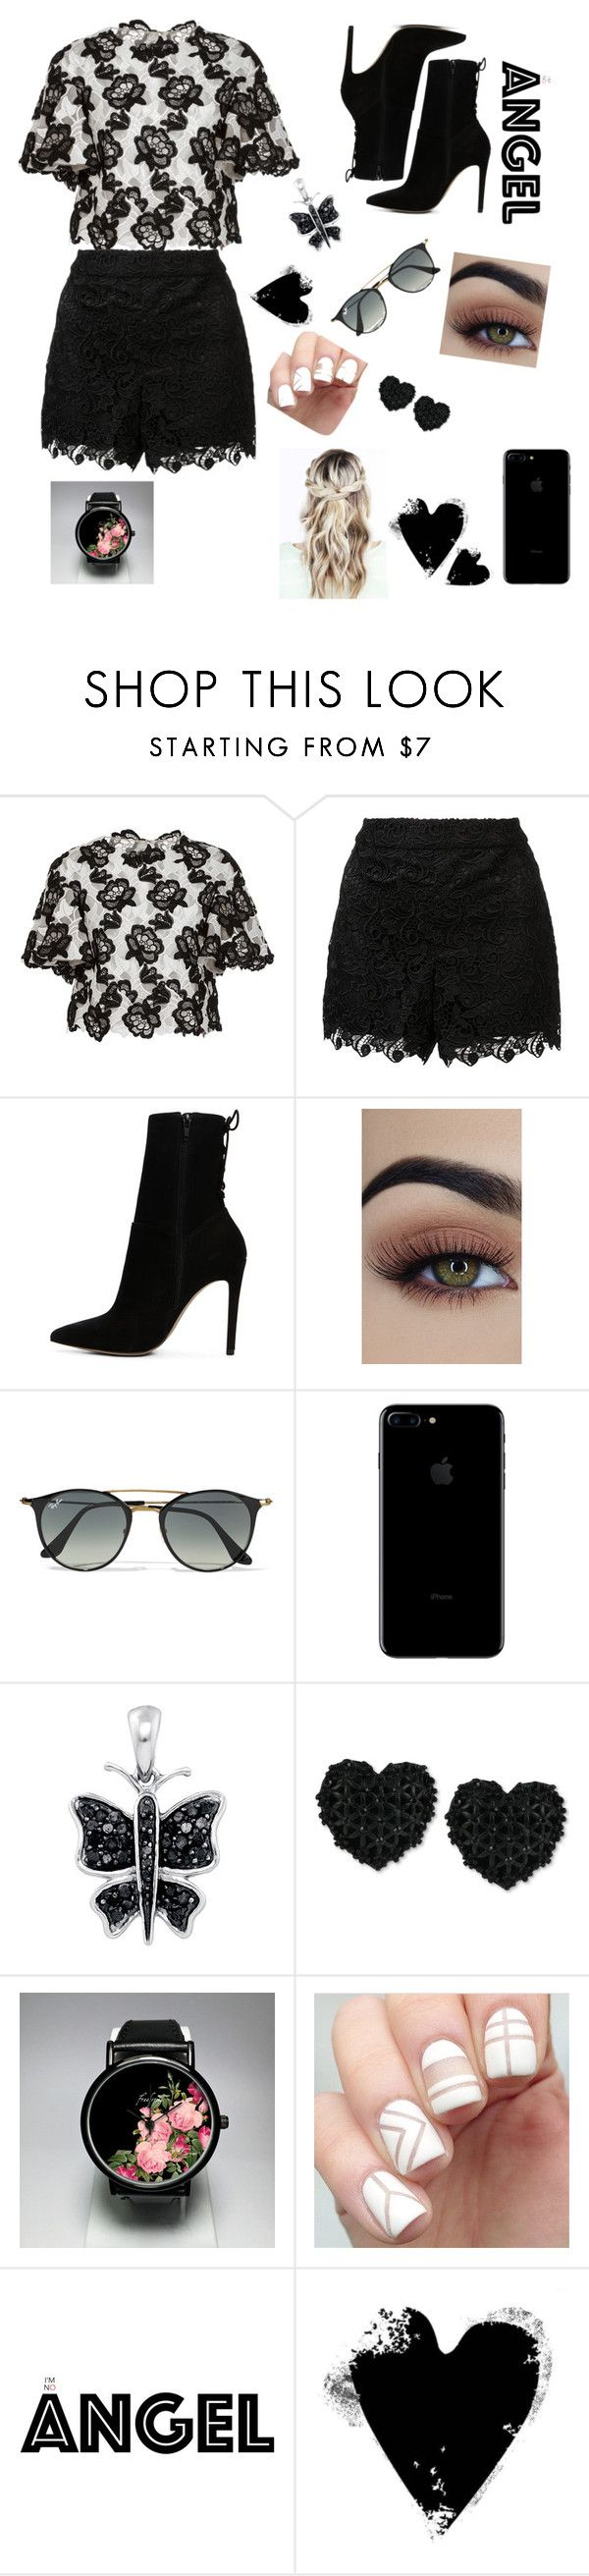 """Black 'n White"" by mariathomas02 ❤ liked on Polyvore featuring Monique Lhuillier, Alice + Olivia, ALDO, Ray-Ban and Betsey Johnson"